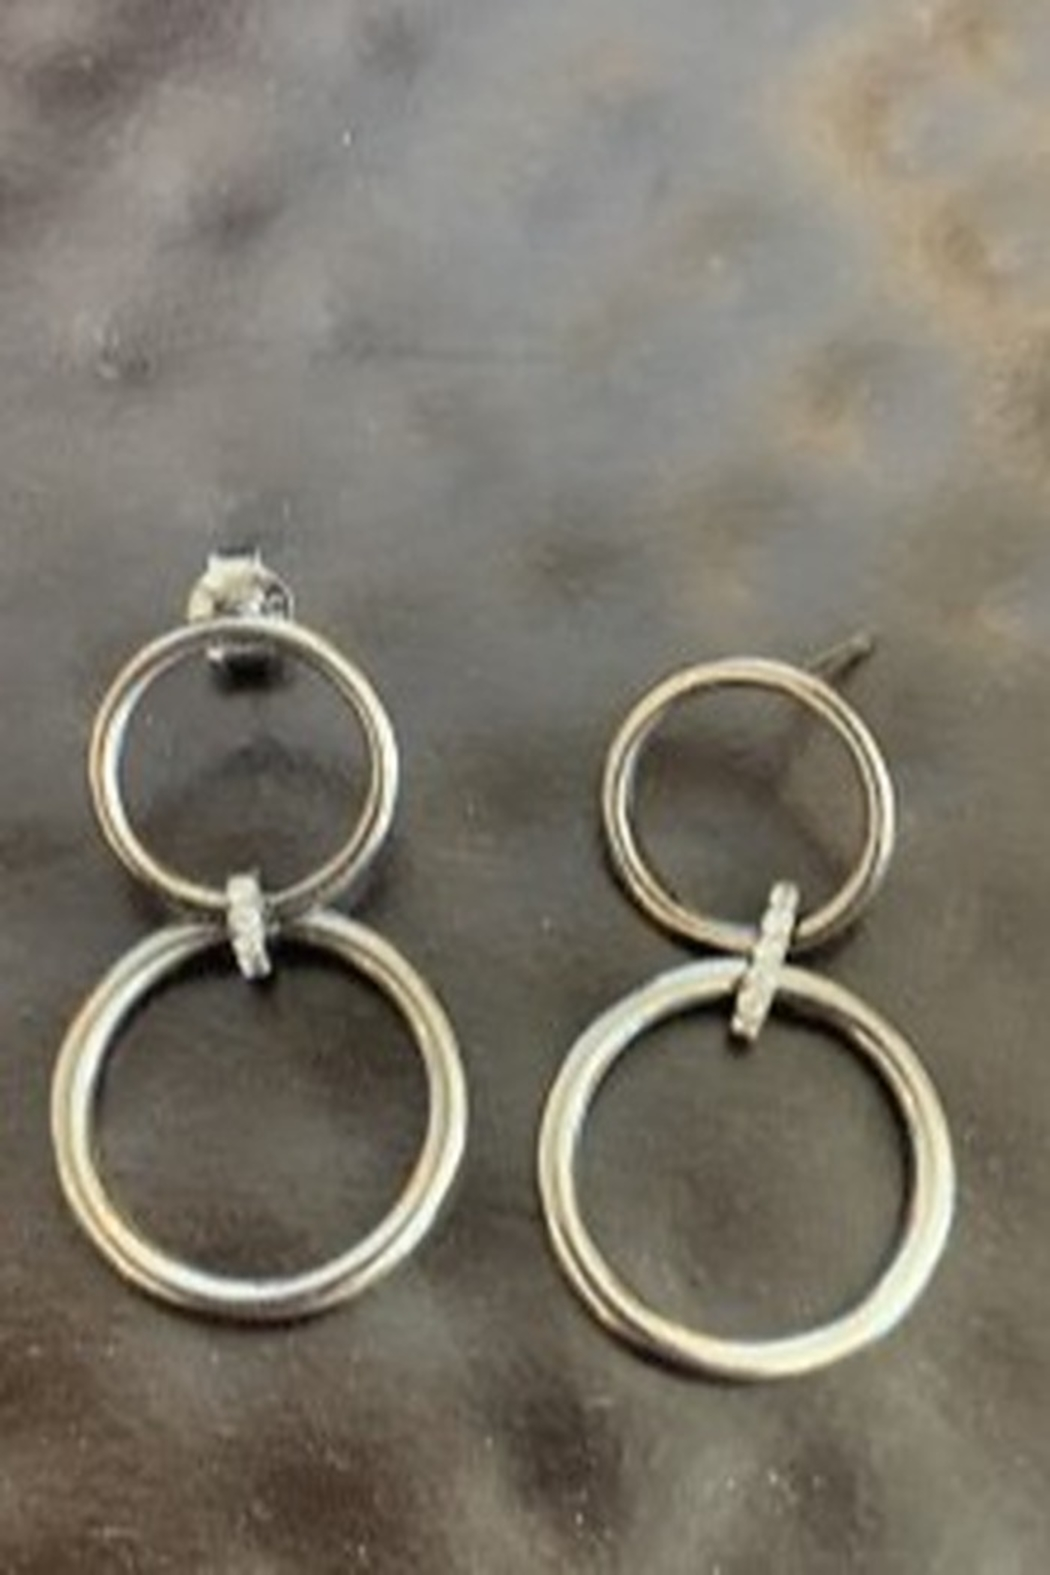 Ela Rae Double ring earrings - Main Image